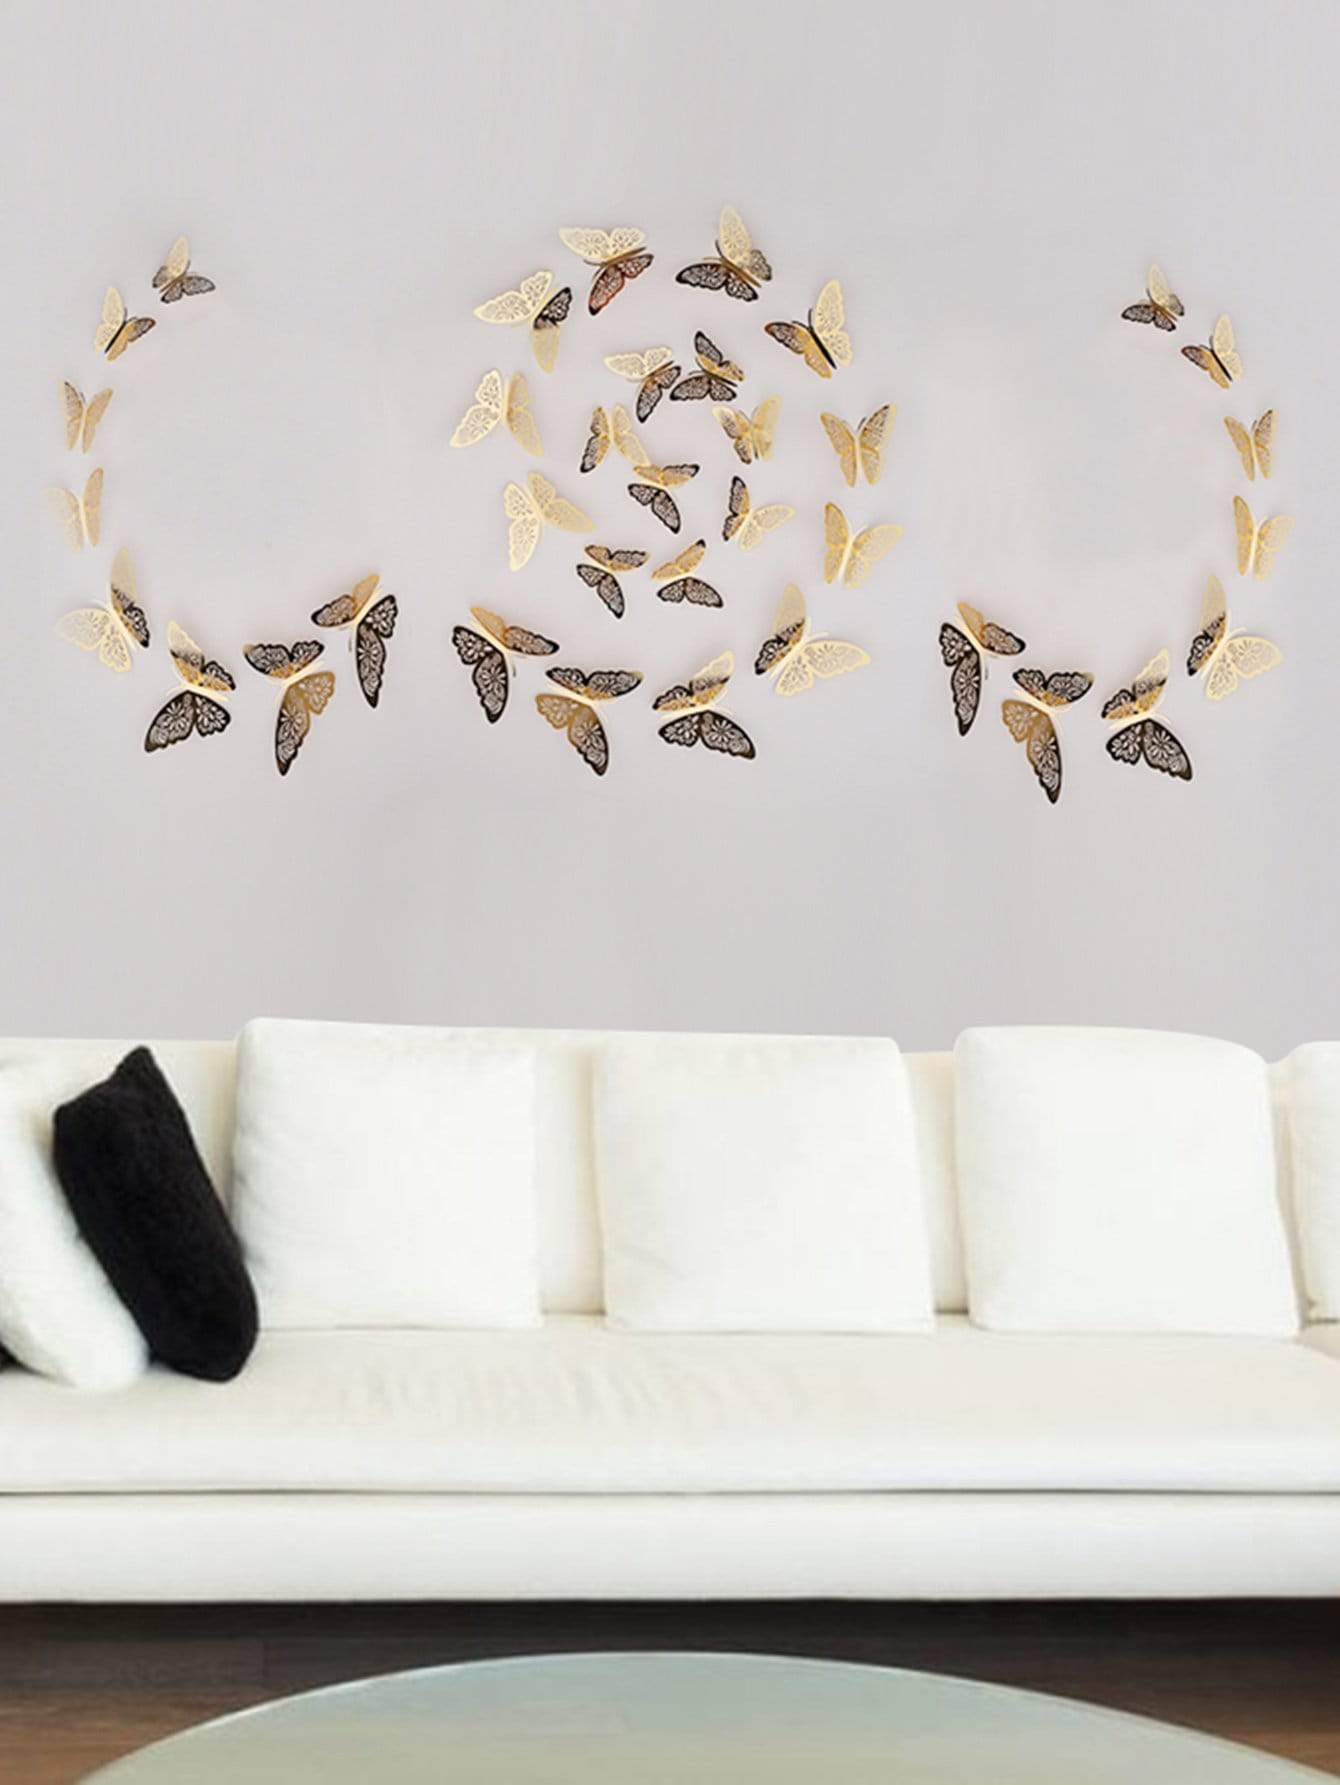 Adhesivo Decorativo Para Paredes Adhesivo Decorativo De Pared Con 12 Mariposas 3d Spanish